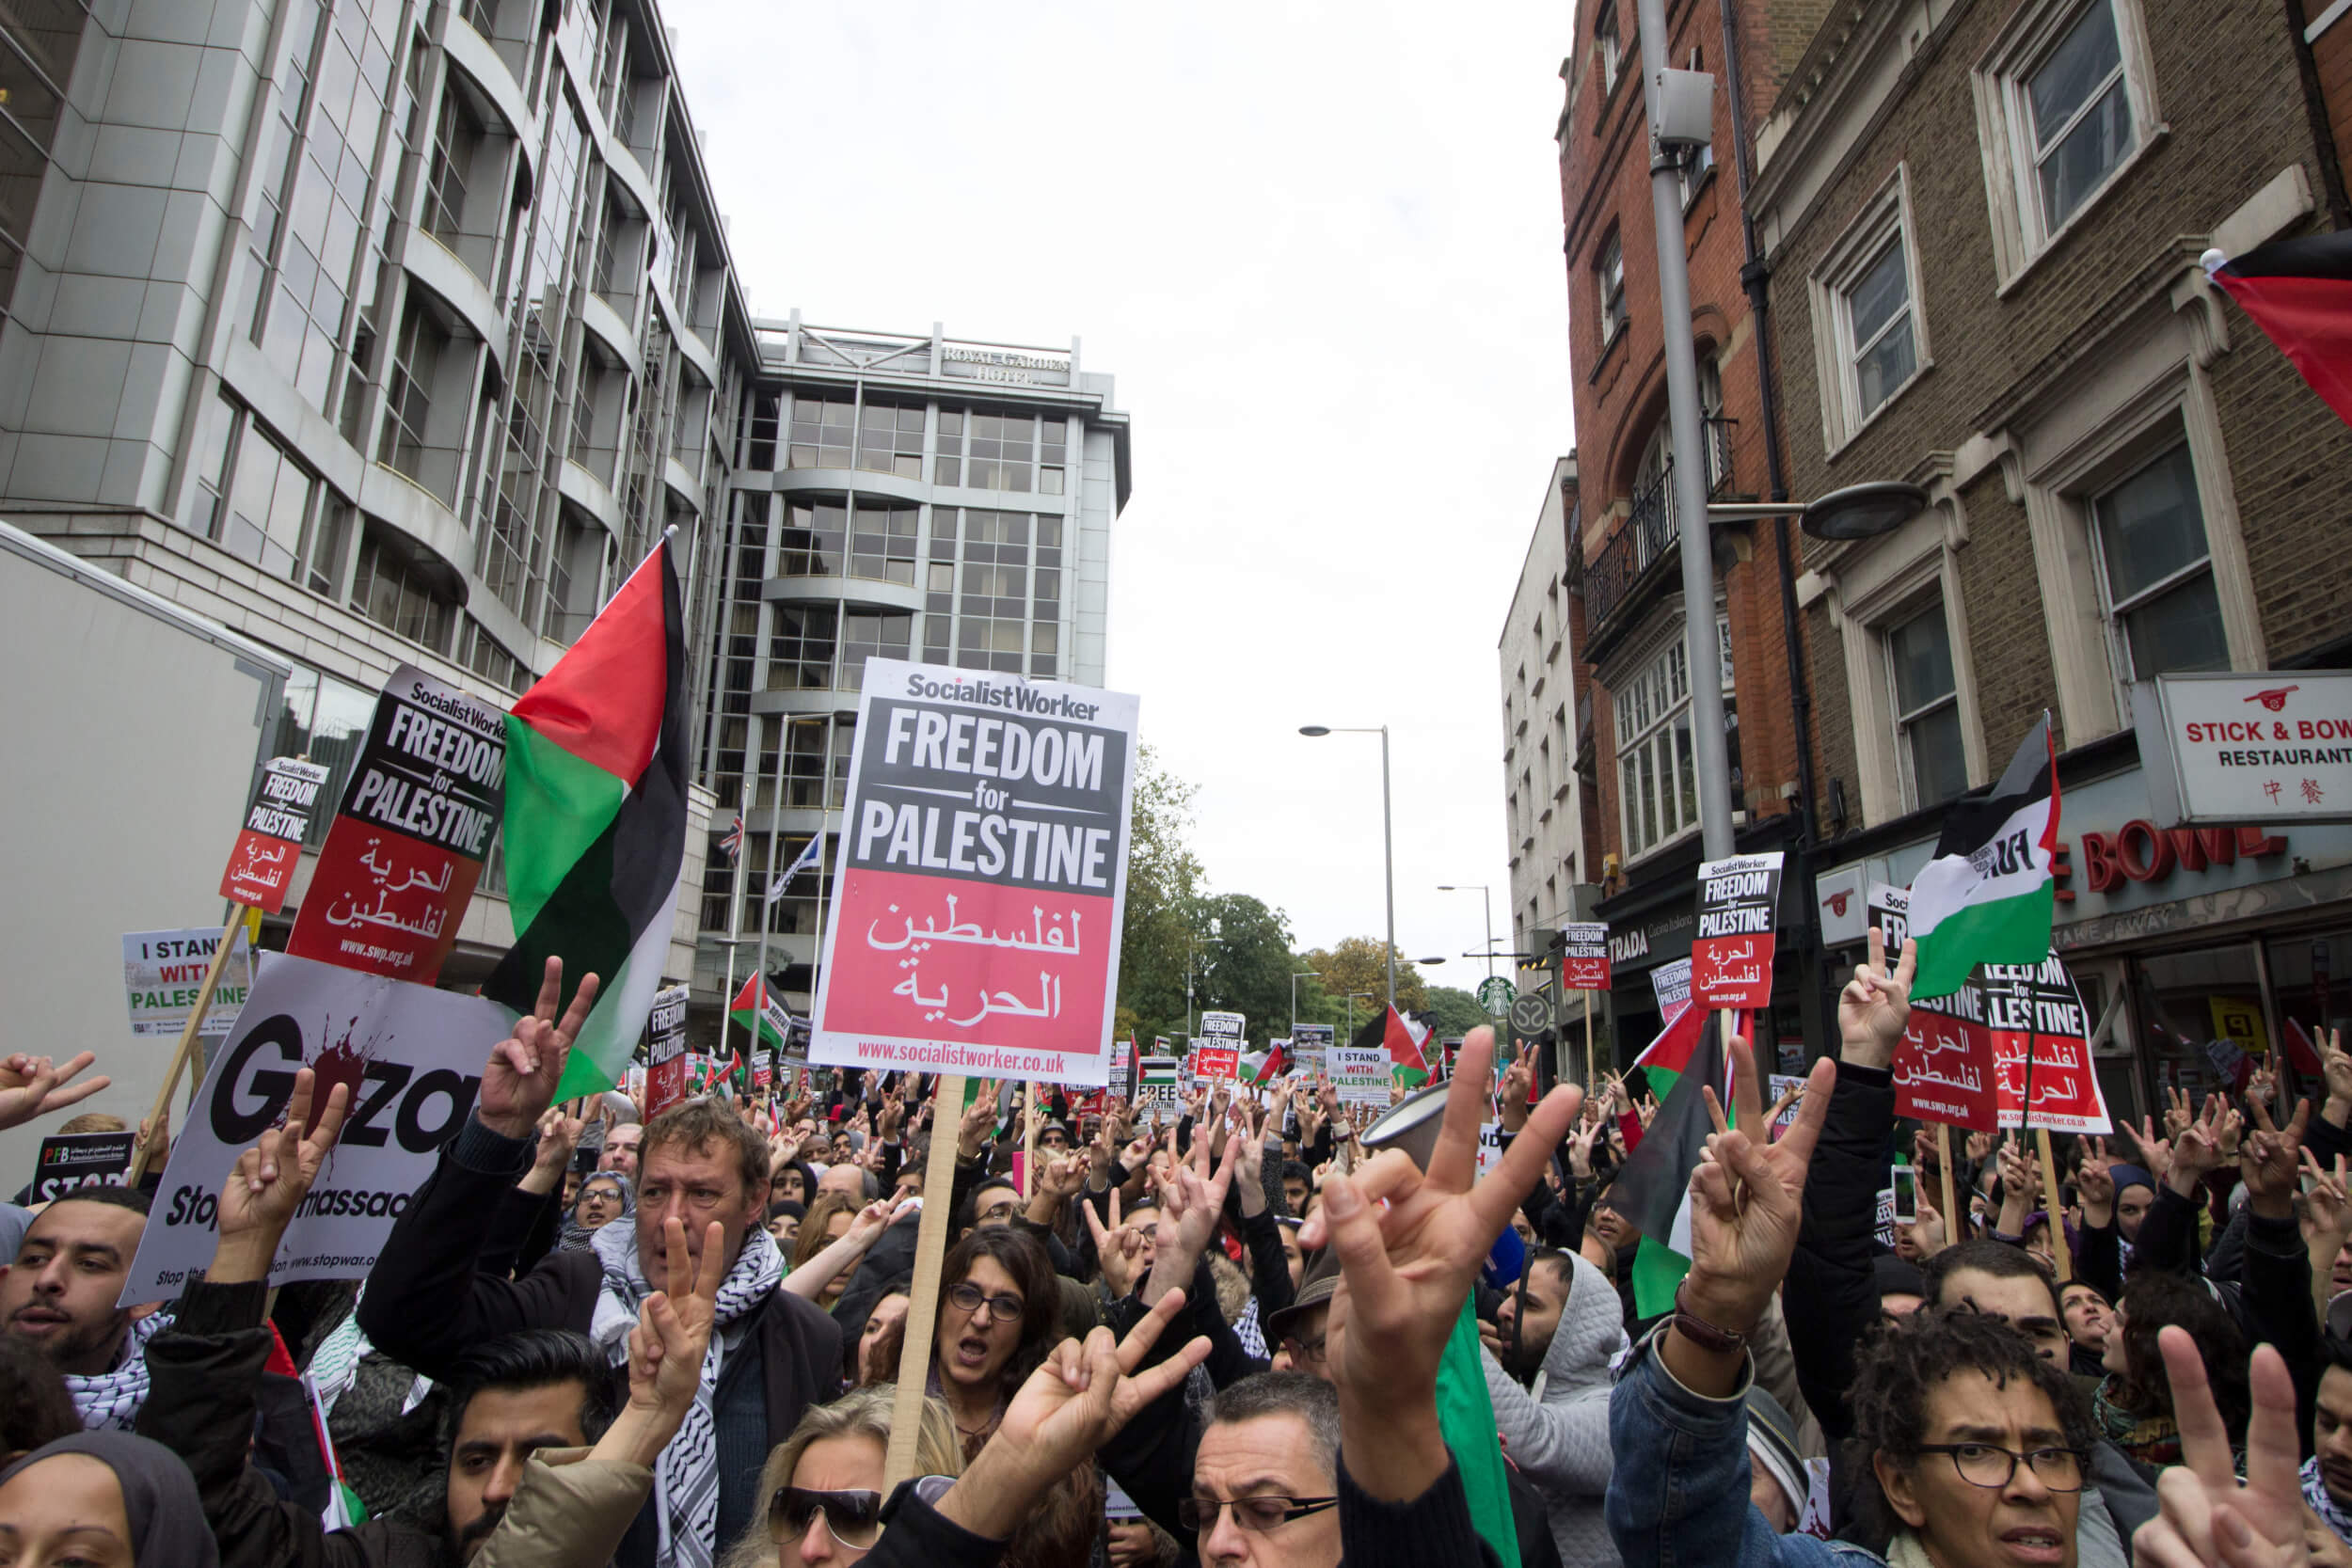 Some 2,500 protesters gathered in front of the Israeli embassy in High Street Kensington, London, raising their hands in signs of peace. (Photo: Sara Anna)